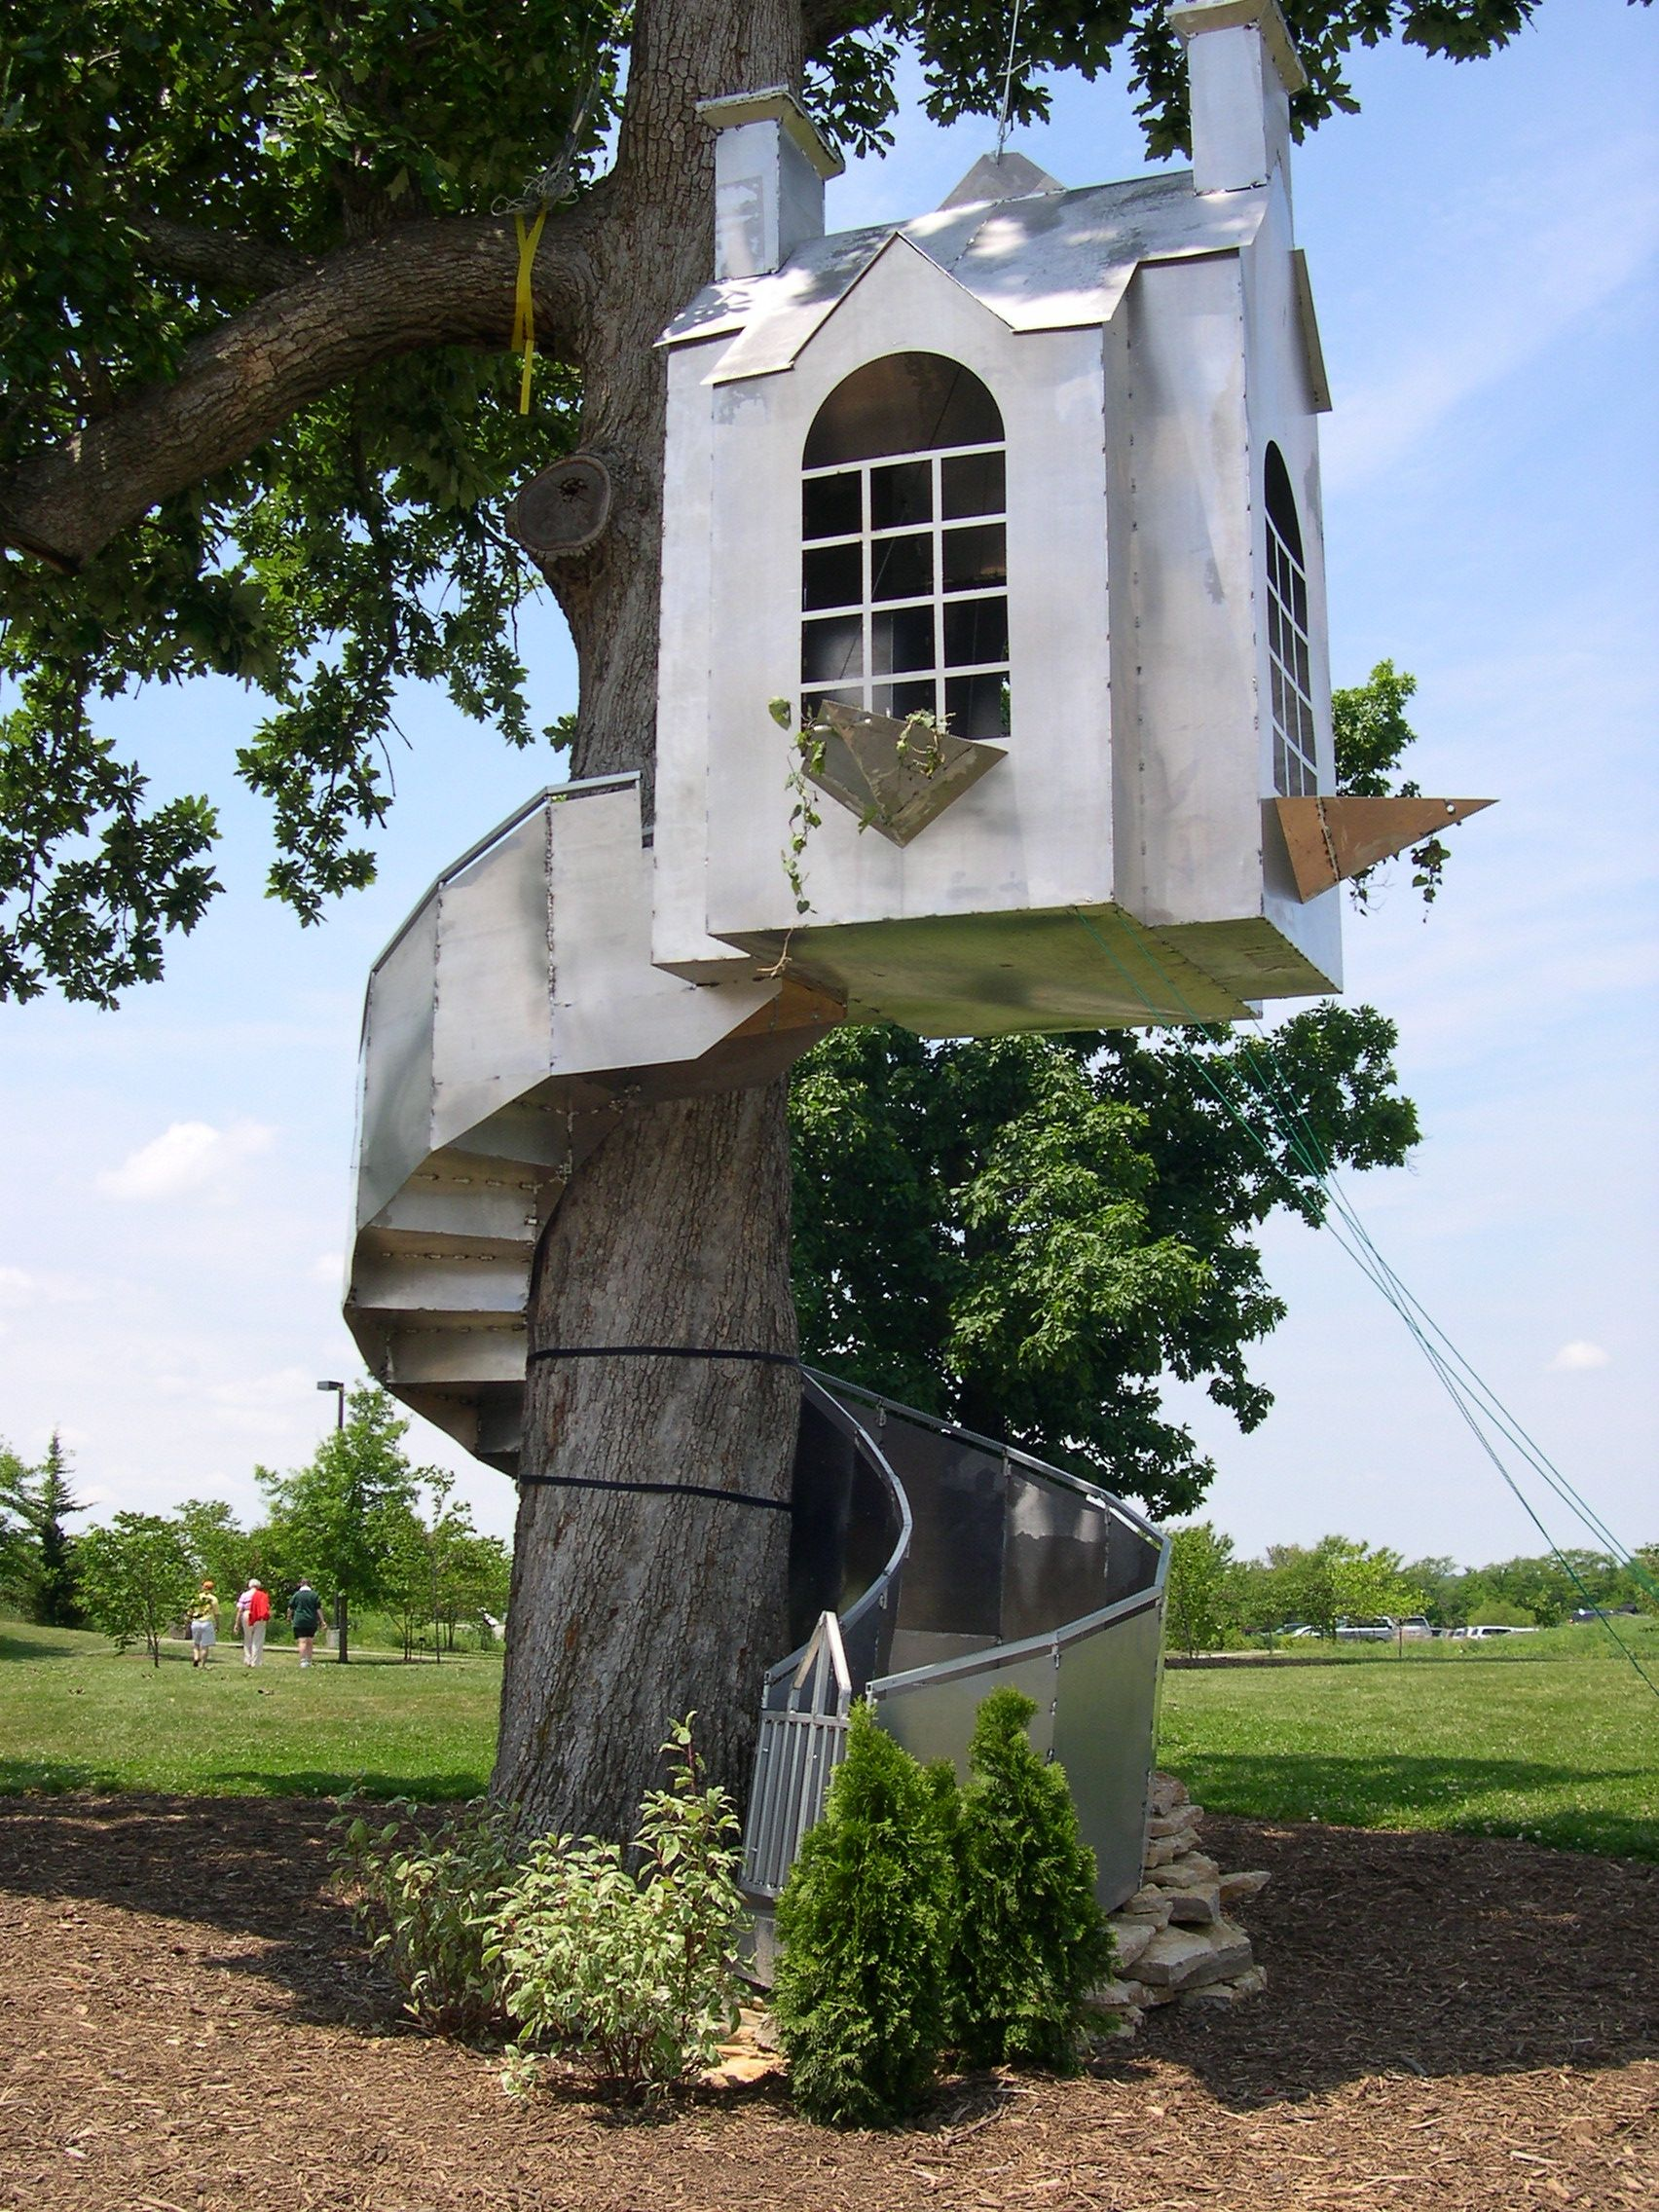 Tiny House Treehouse Stairs Spiral Around The Tree, Up To